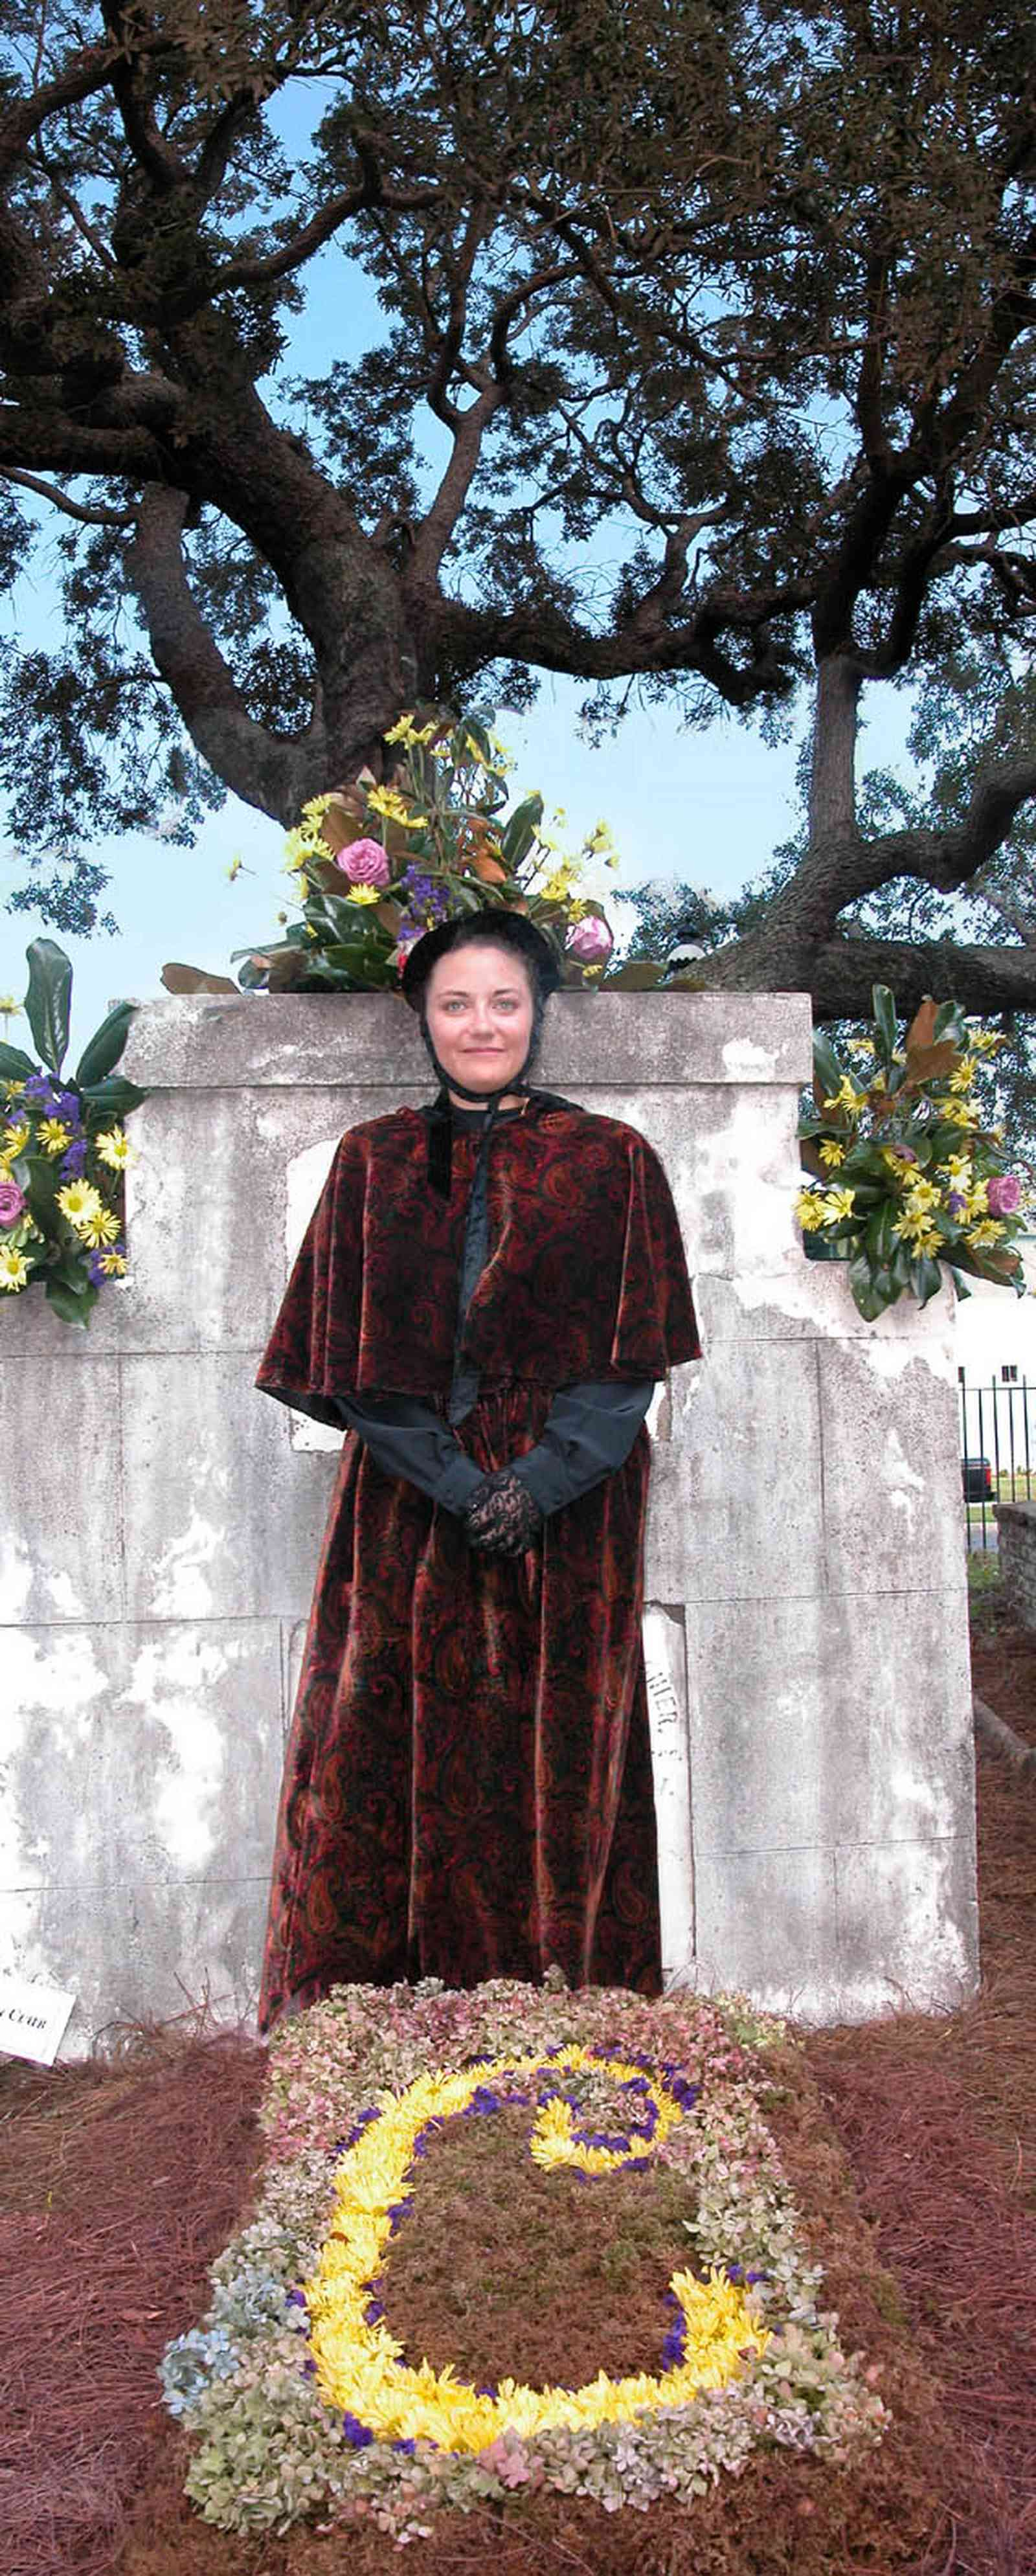 Pensacola:-Seville-Historic-District:-St-Michael-Cemetery_32.jpg:  floral tribute, velvet dress, gravesite, bonnet, oak tree, grave marker, monument